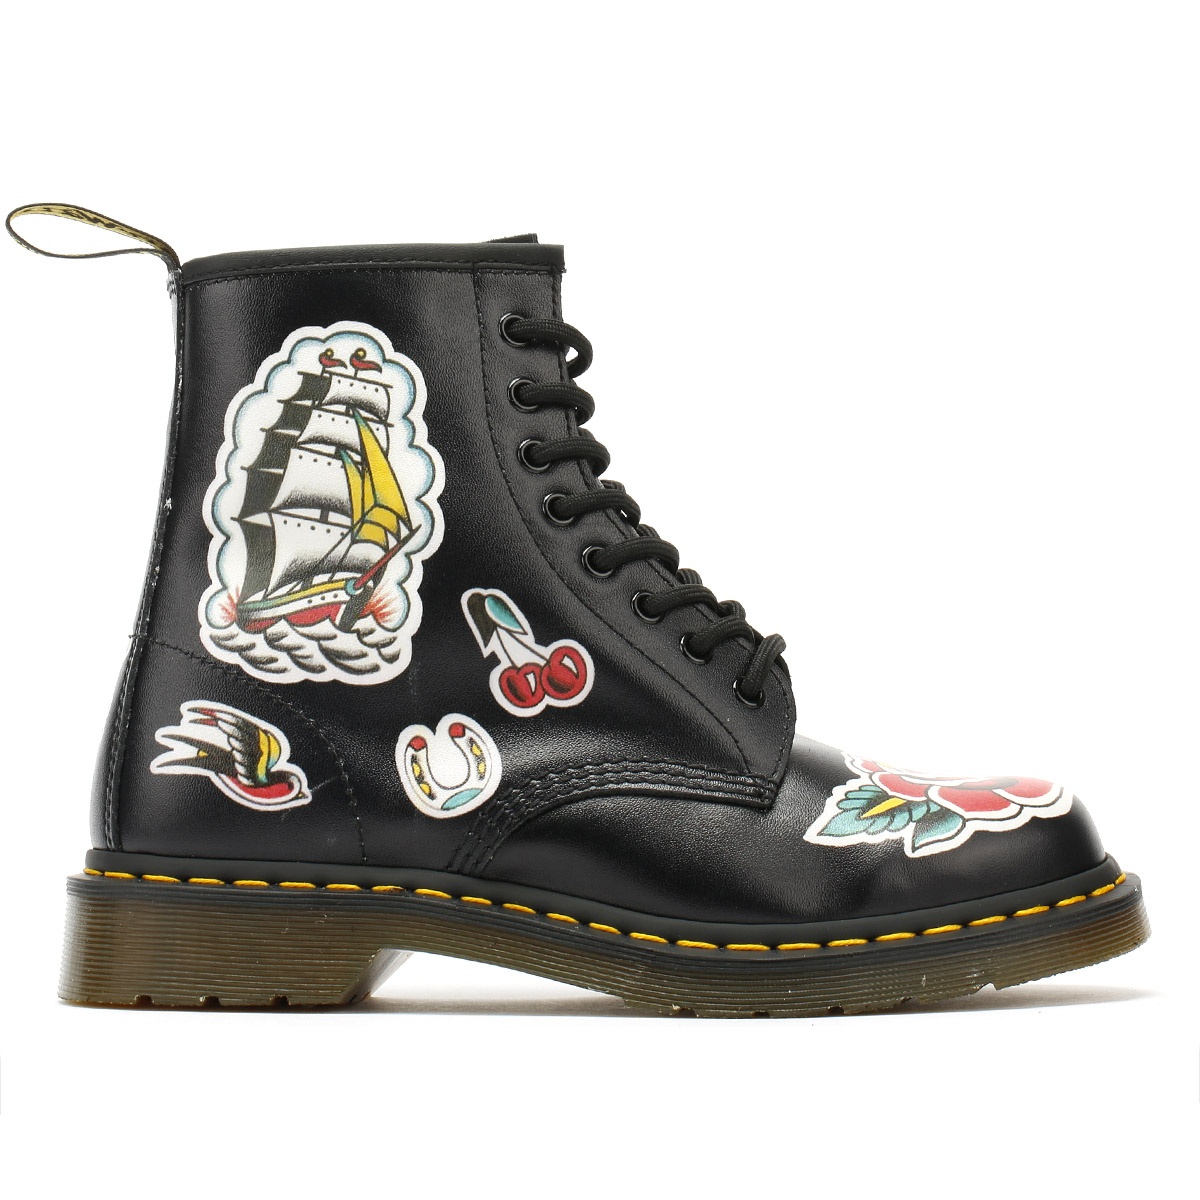 6b3cfcfdf5 Goodyear-welted  Dr. Martens air-cushioned sole  Backhand is a full-grain  and fully finished comfort leather